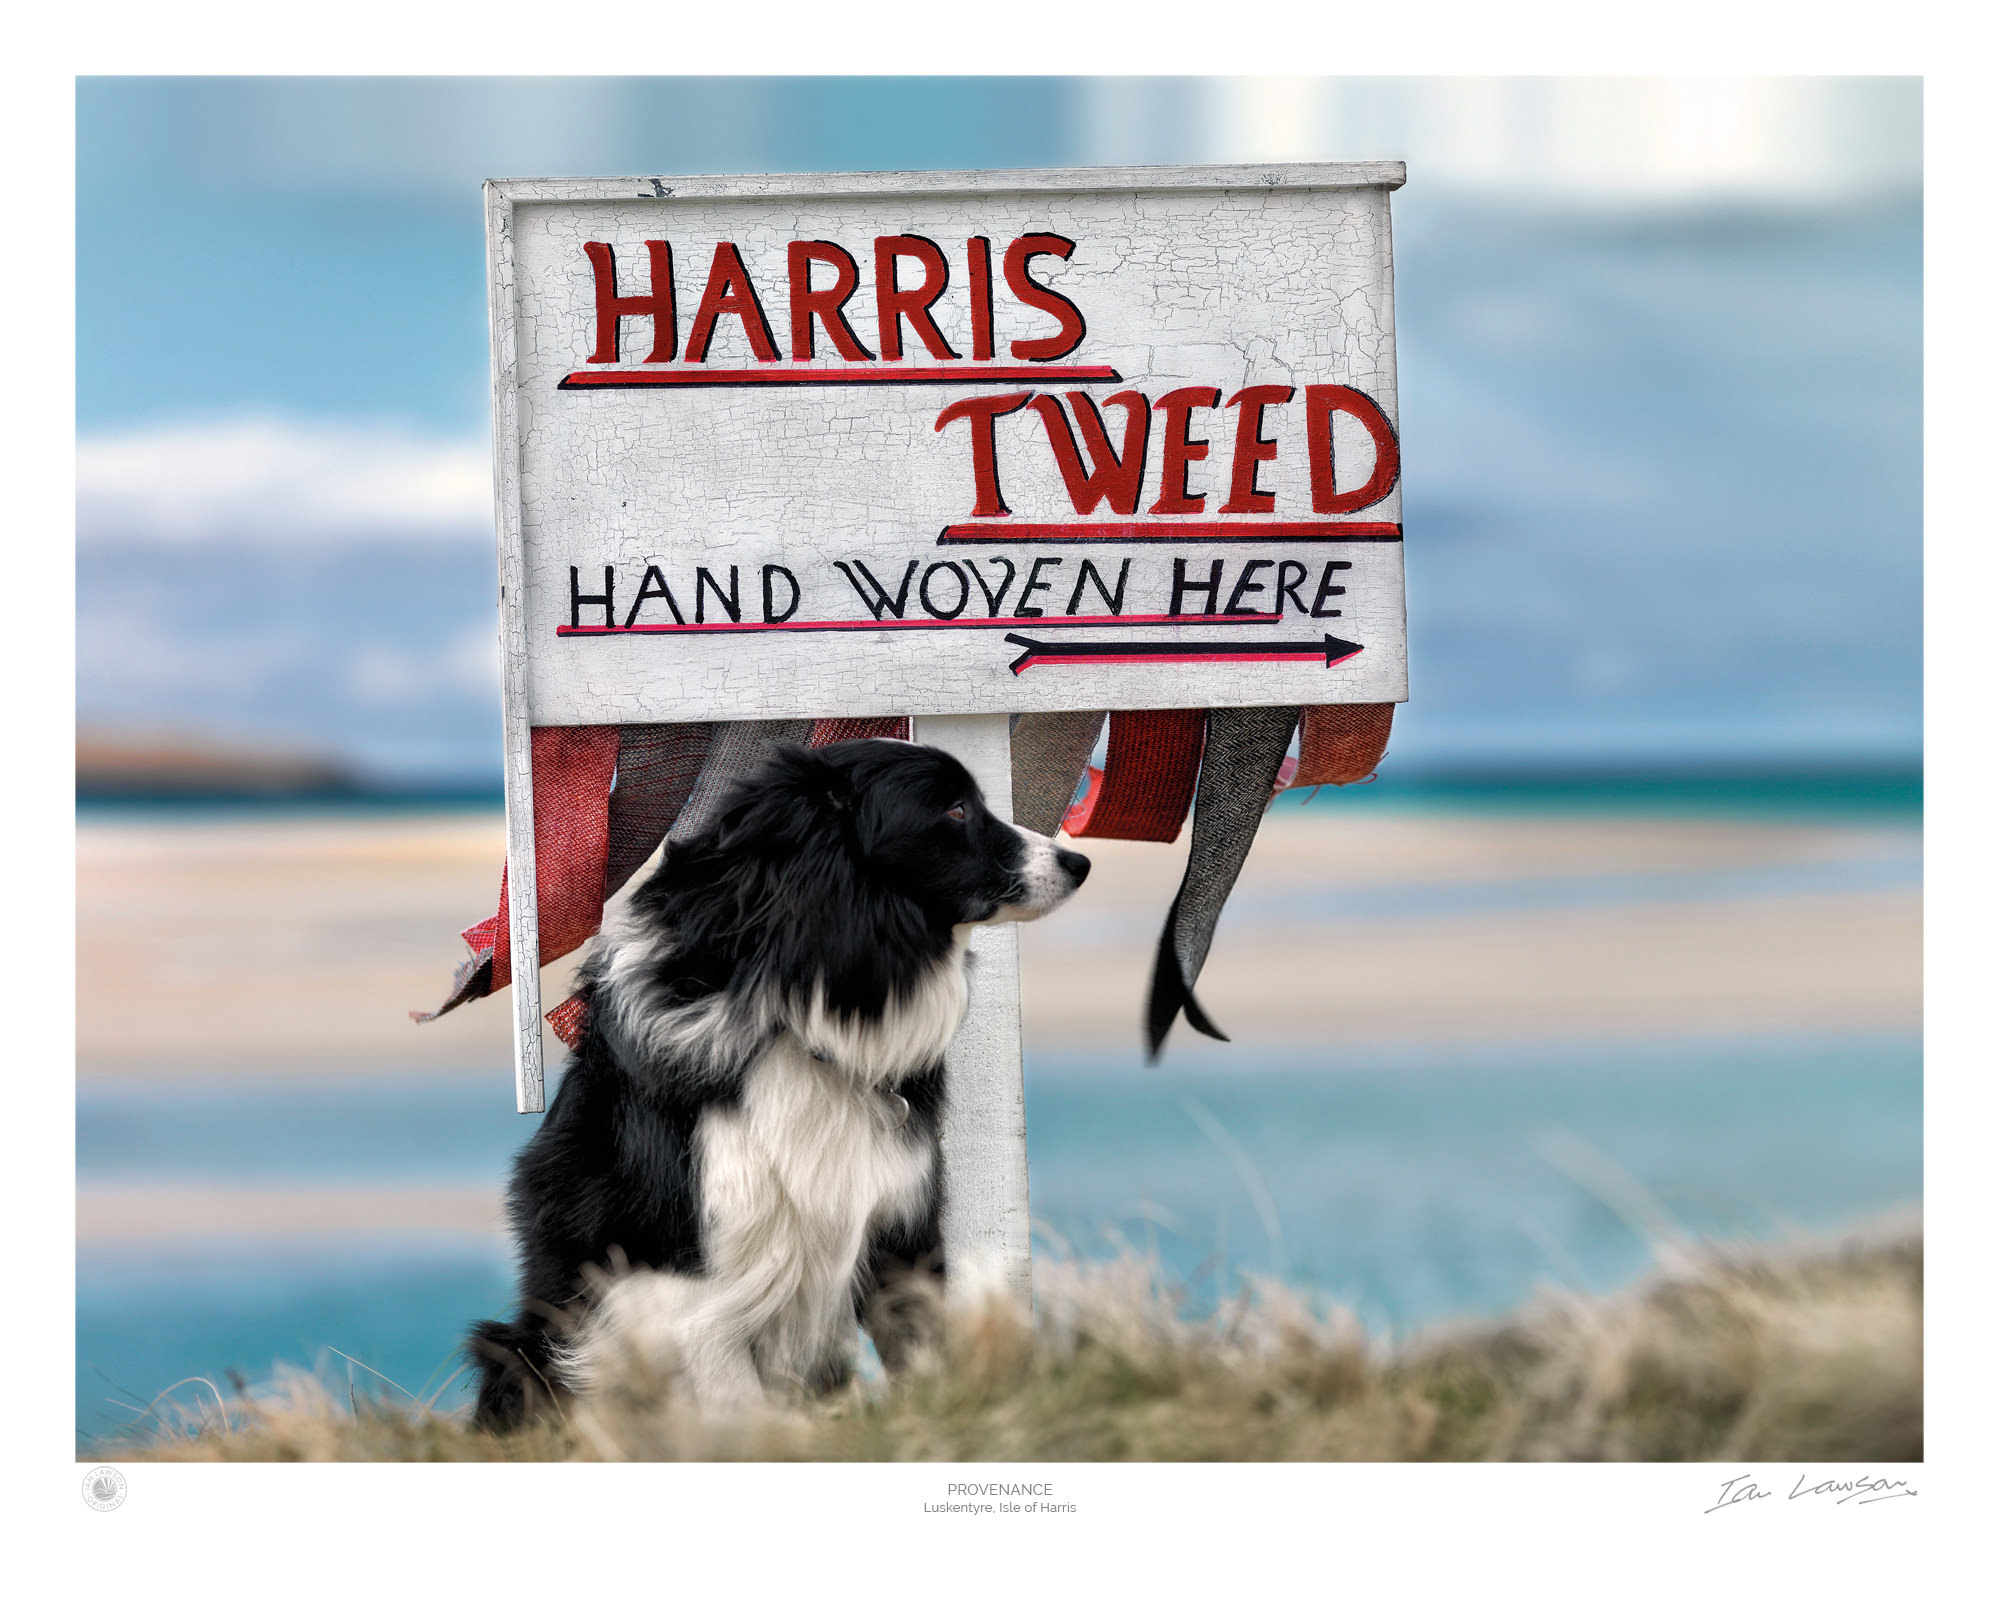 provenance_luskentyre_harris_ian-lawson